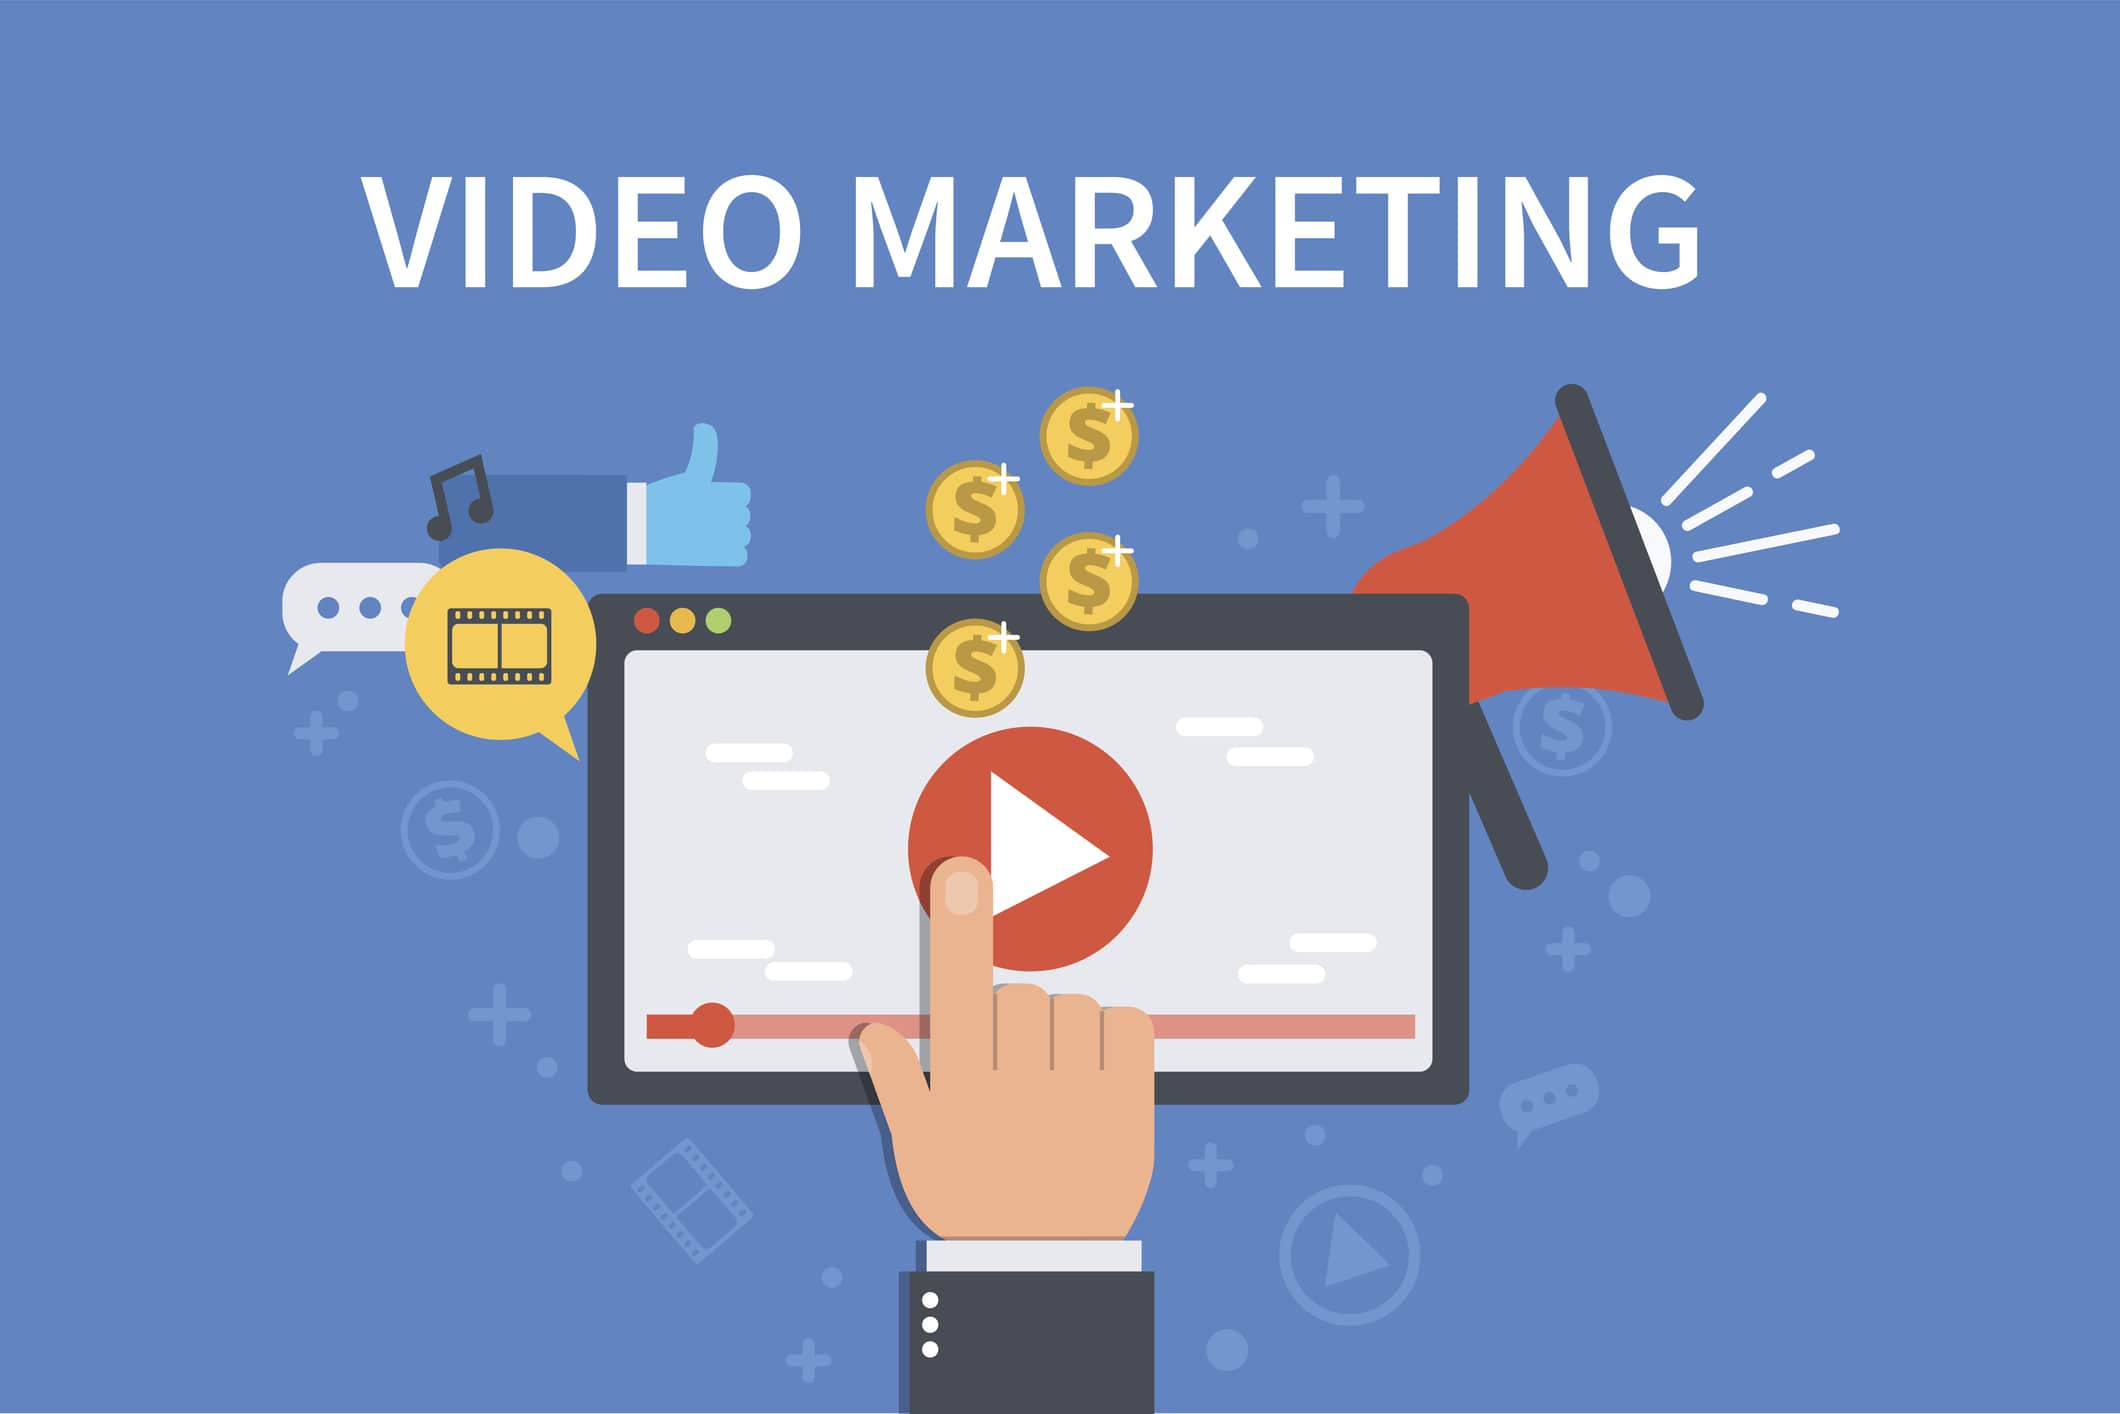 Online Video Platform Comparison Best Video Hosting Services 2017 - monetization